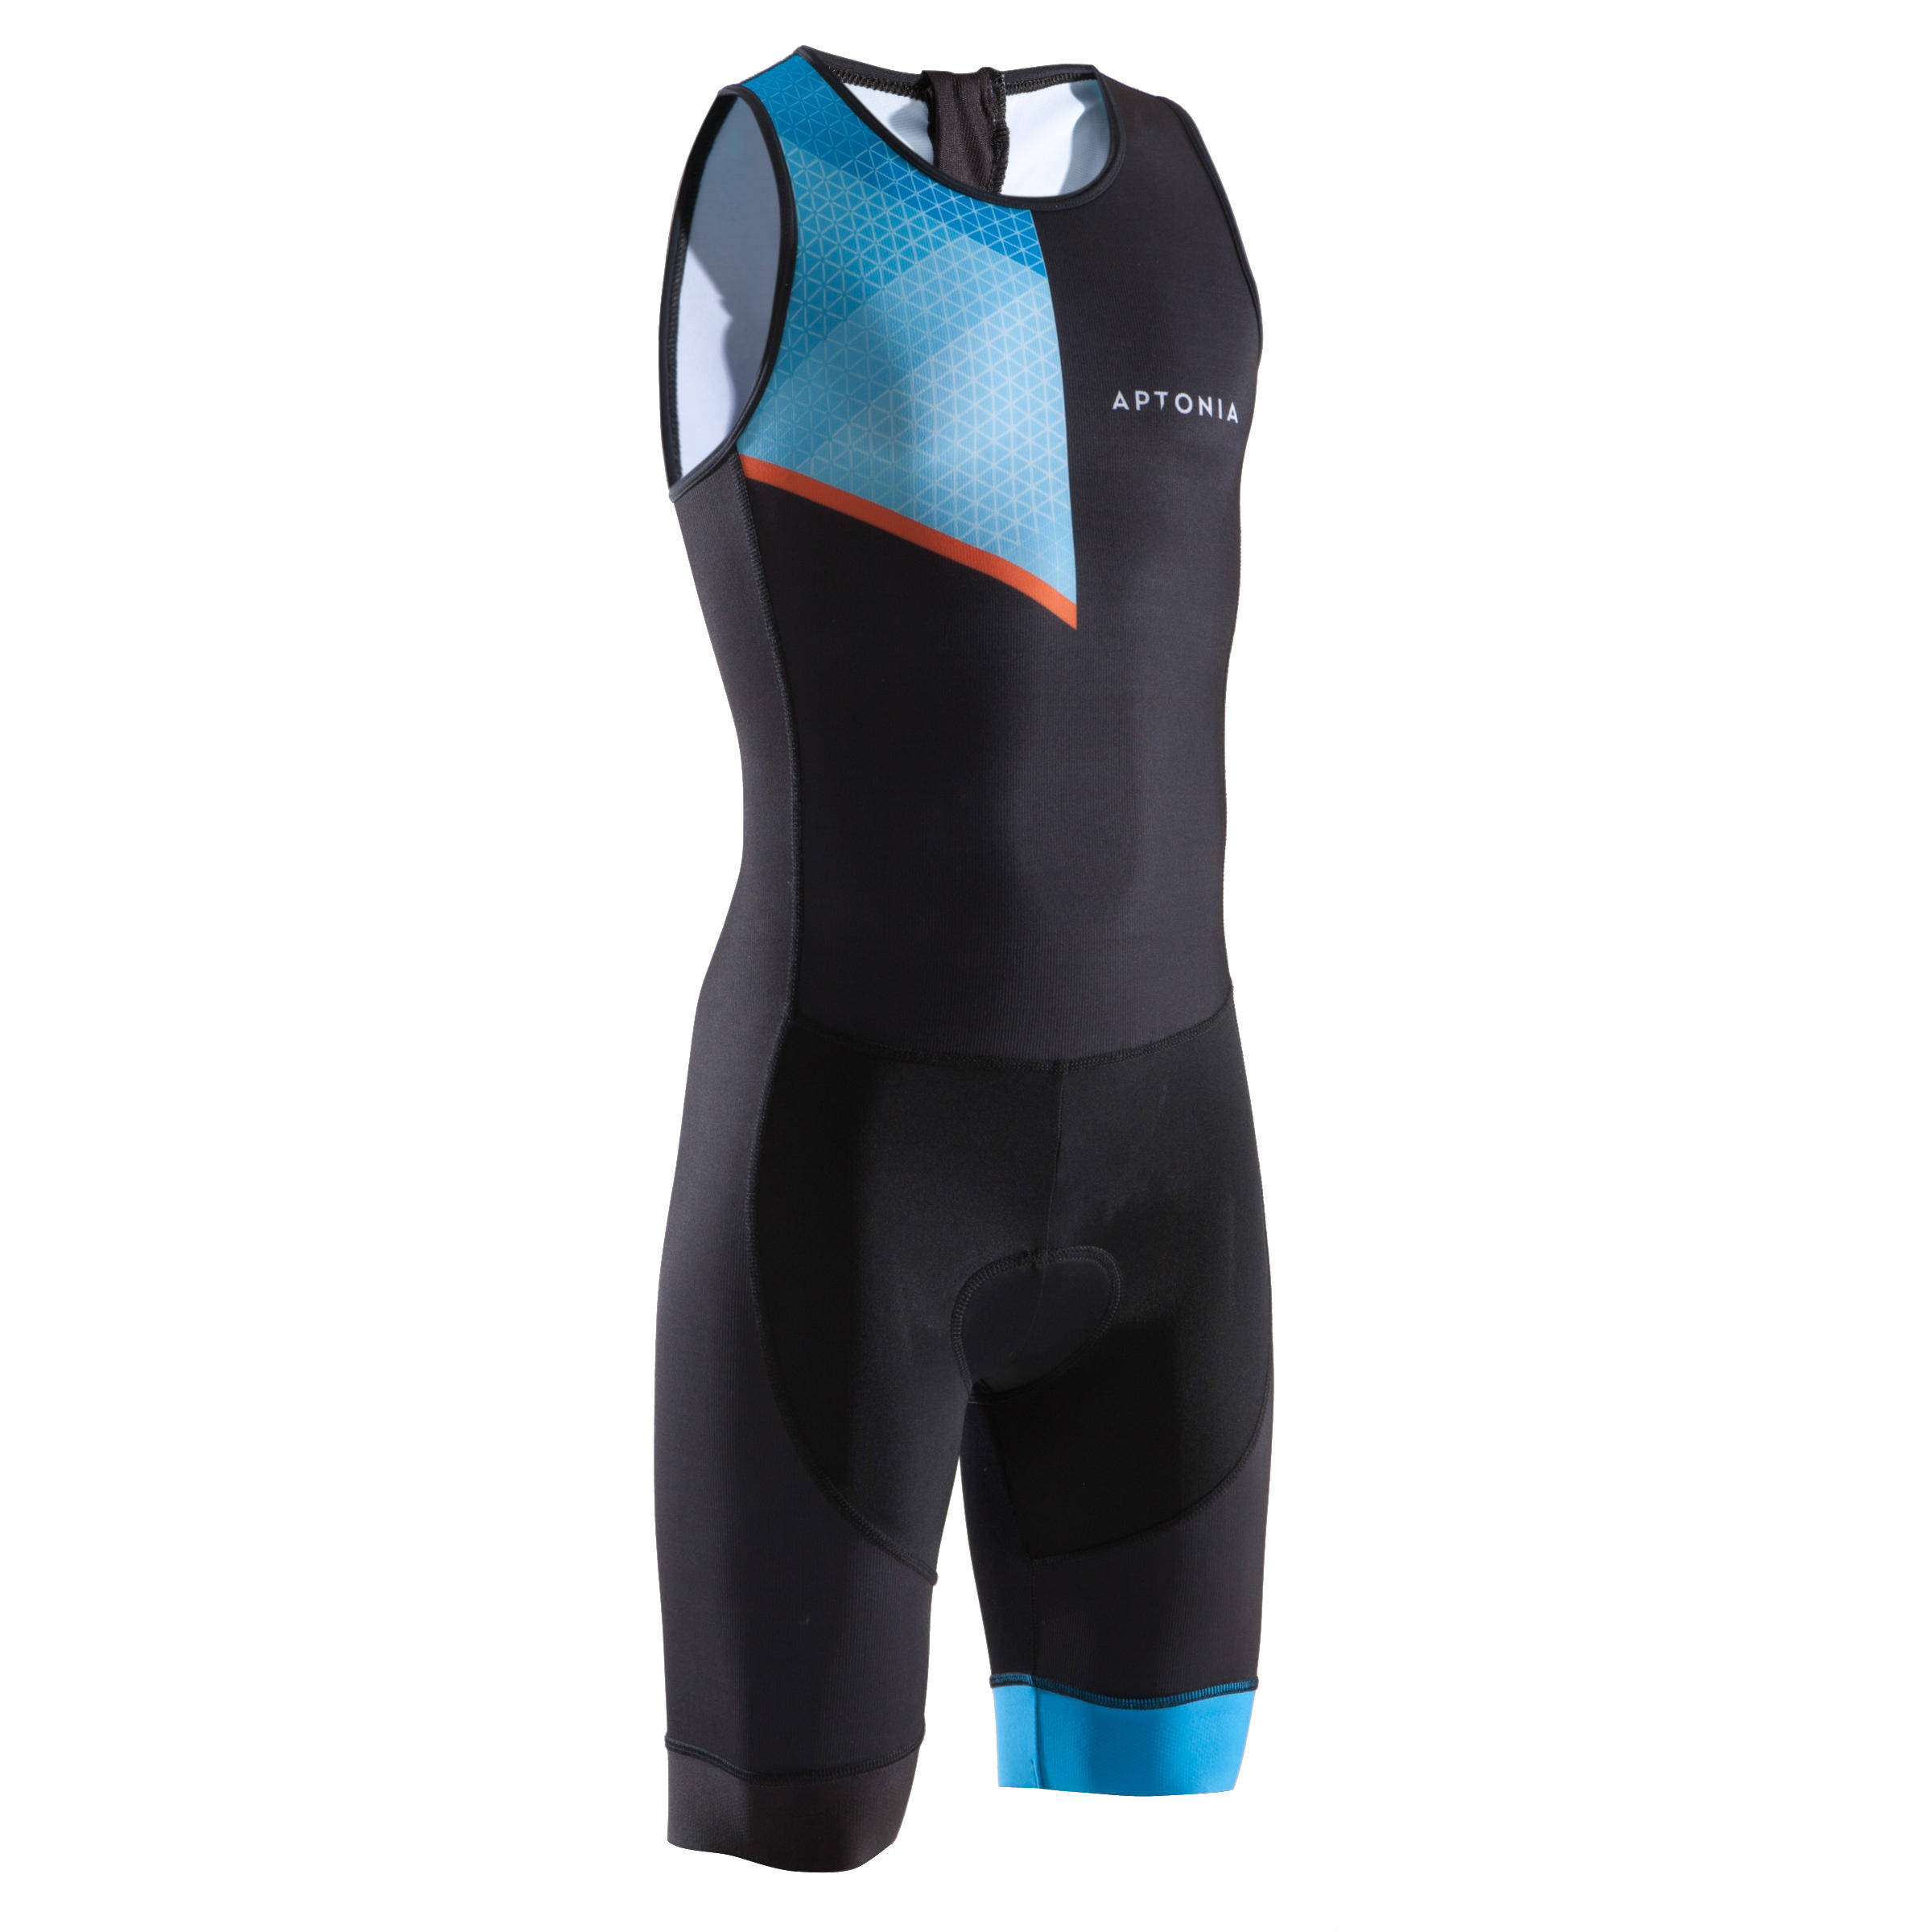 TRIATHLON CHILDREN'S SLEEVELESS TRISUIT BACK ZIPPER BLACK BLUE